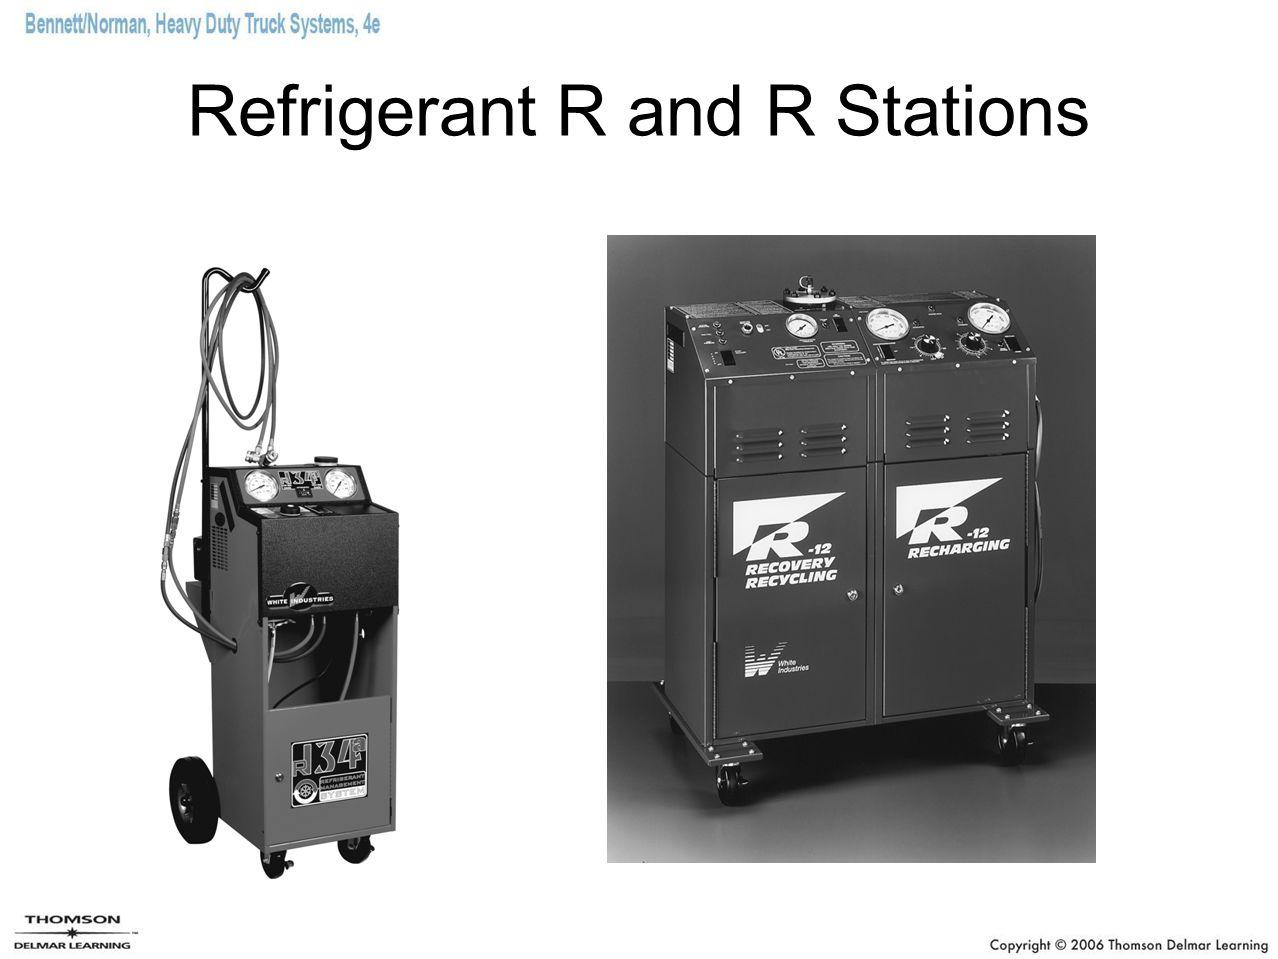 Refrigerant R and R Stations